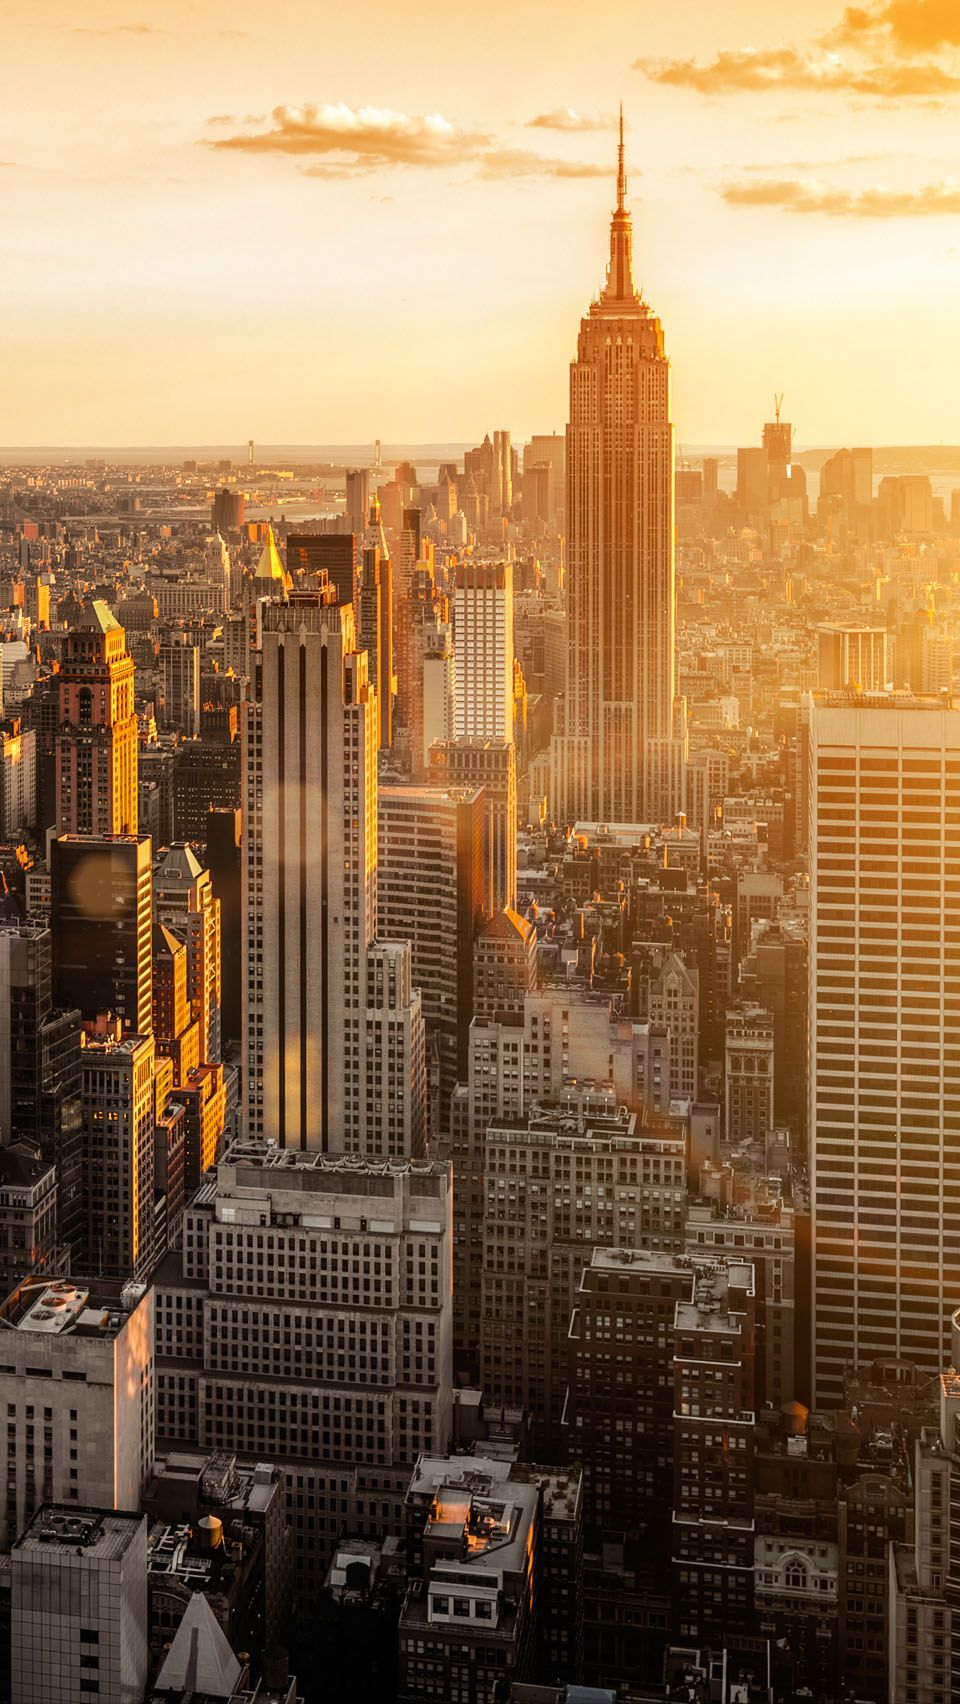 New York Hotels Save 50 Off On Hotels In New York Hotels Com New York Wallpaper York Wallpaper New York